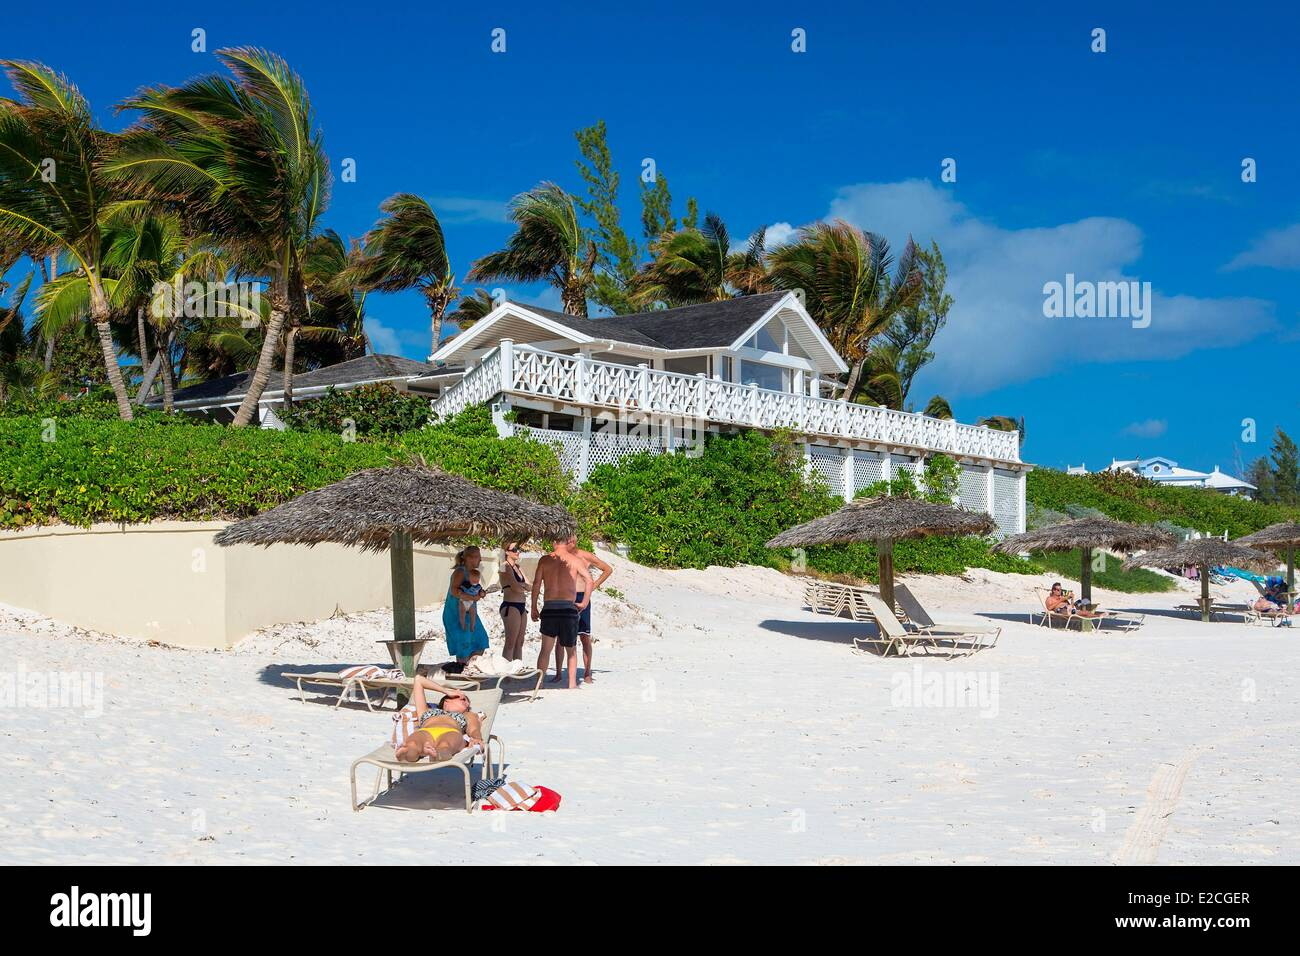 Bahamas, Harbour Island, Beach of Coral Sands Hotel - Stock Image